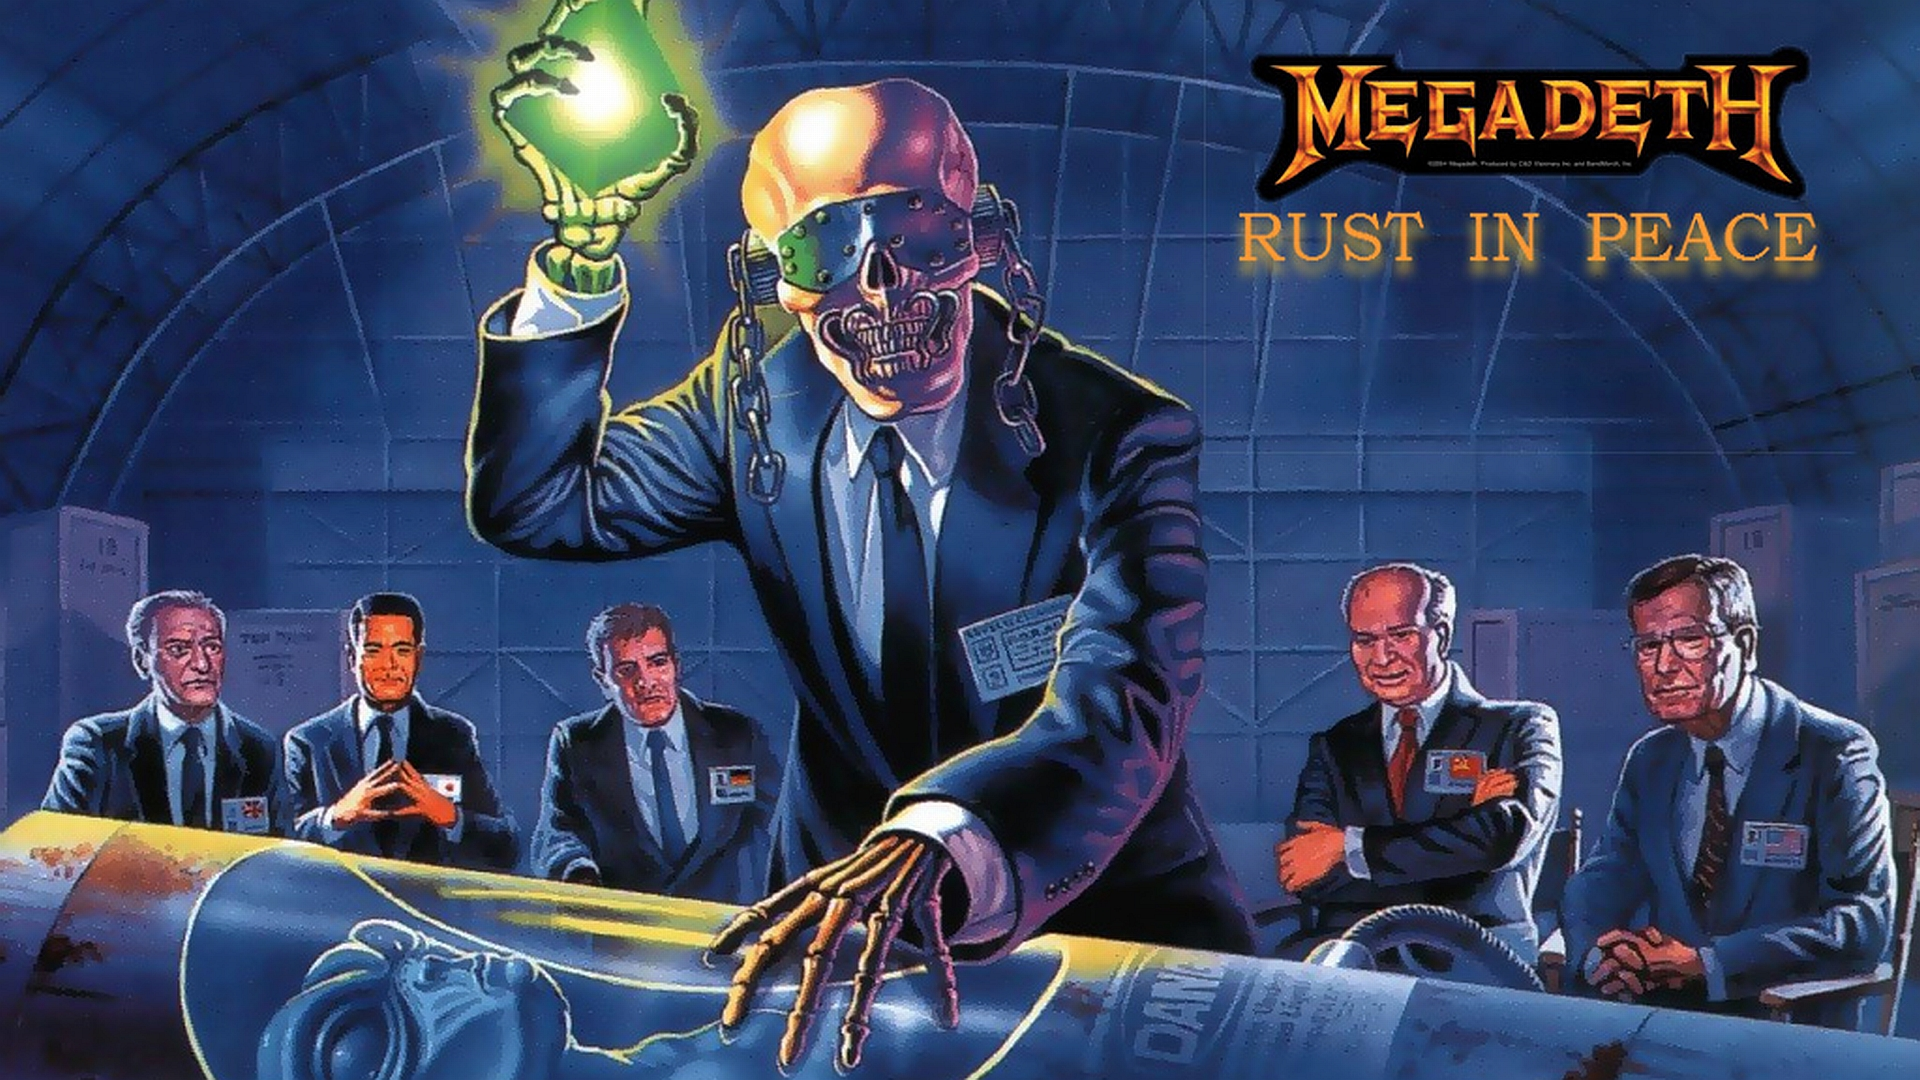 Music - Megadeth  Wallpaper